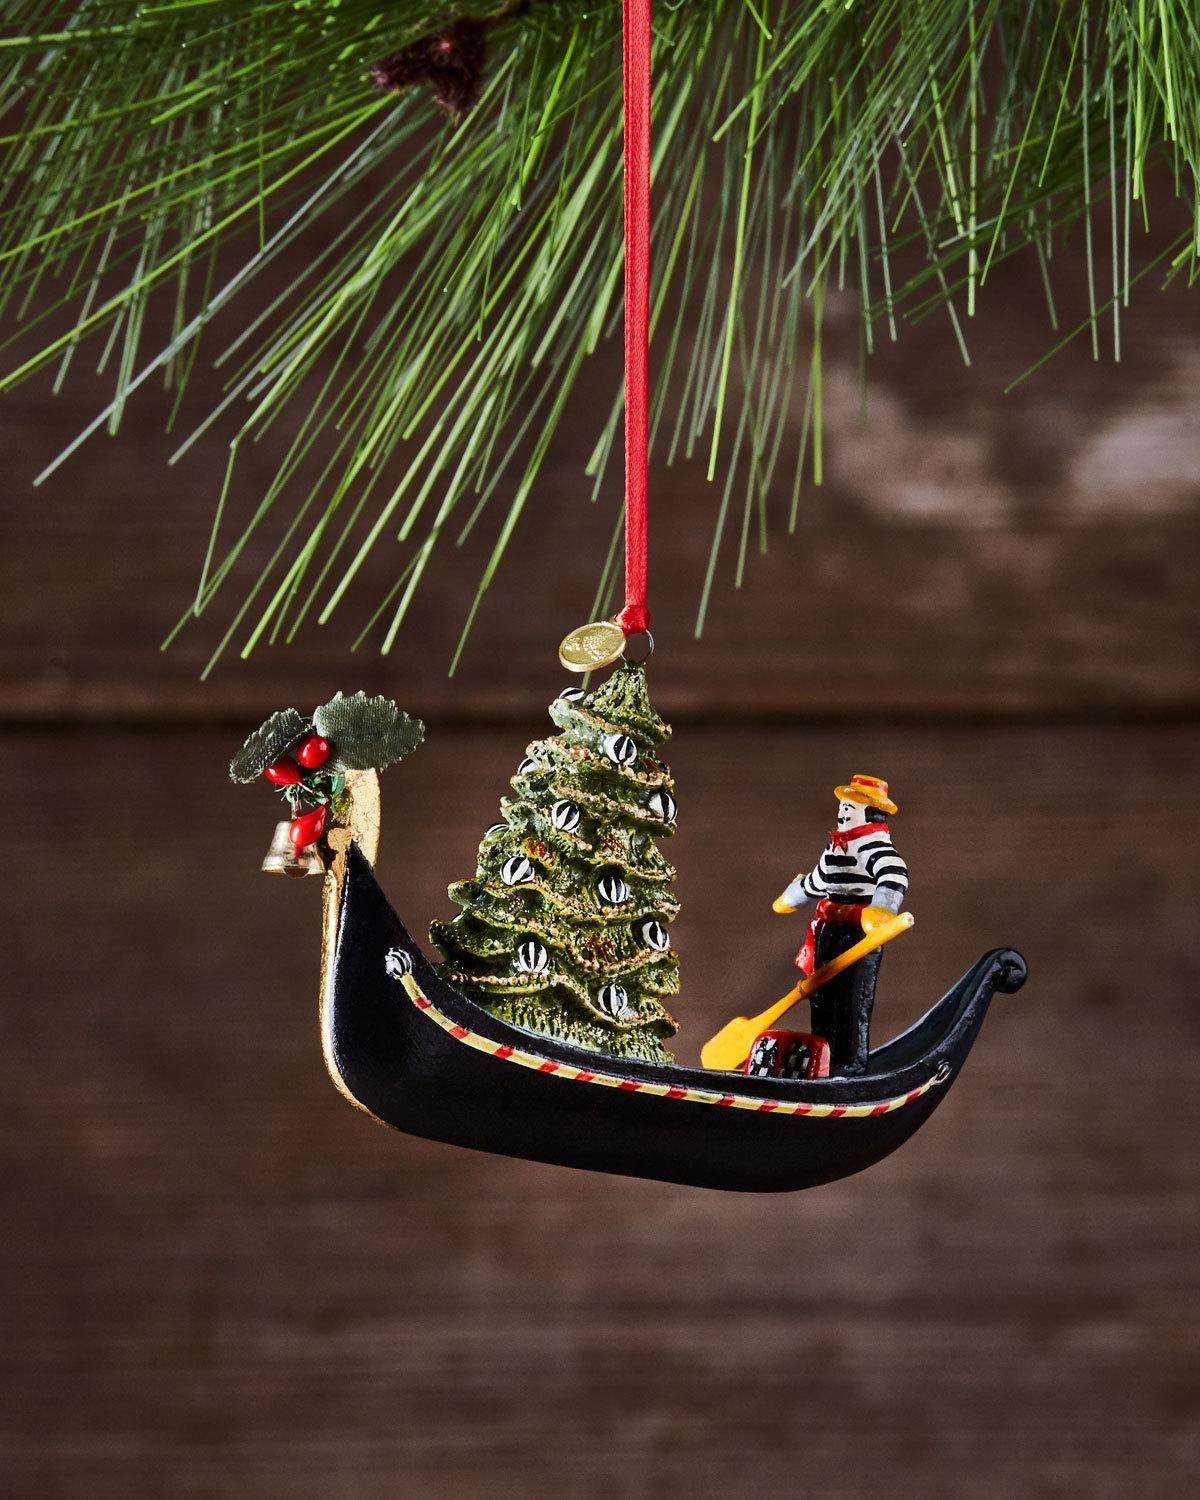 MacKenzieChilds Gondola Christmas Ornament in 2020